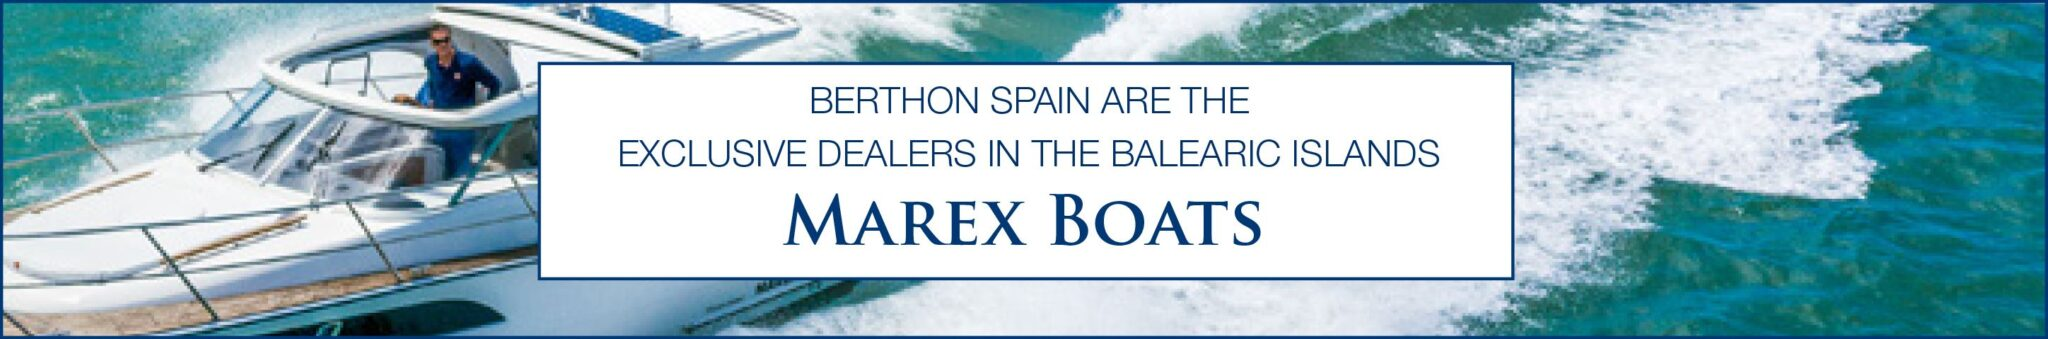 marex-boats-banner-ad-1